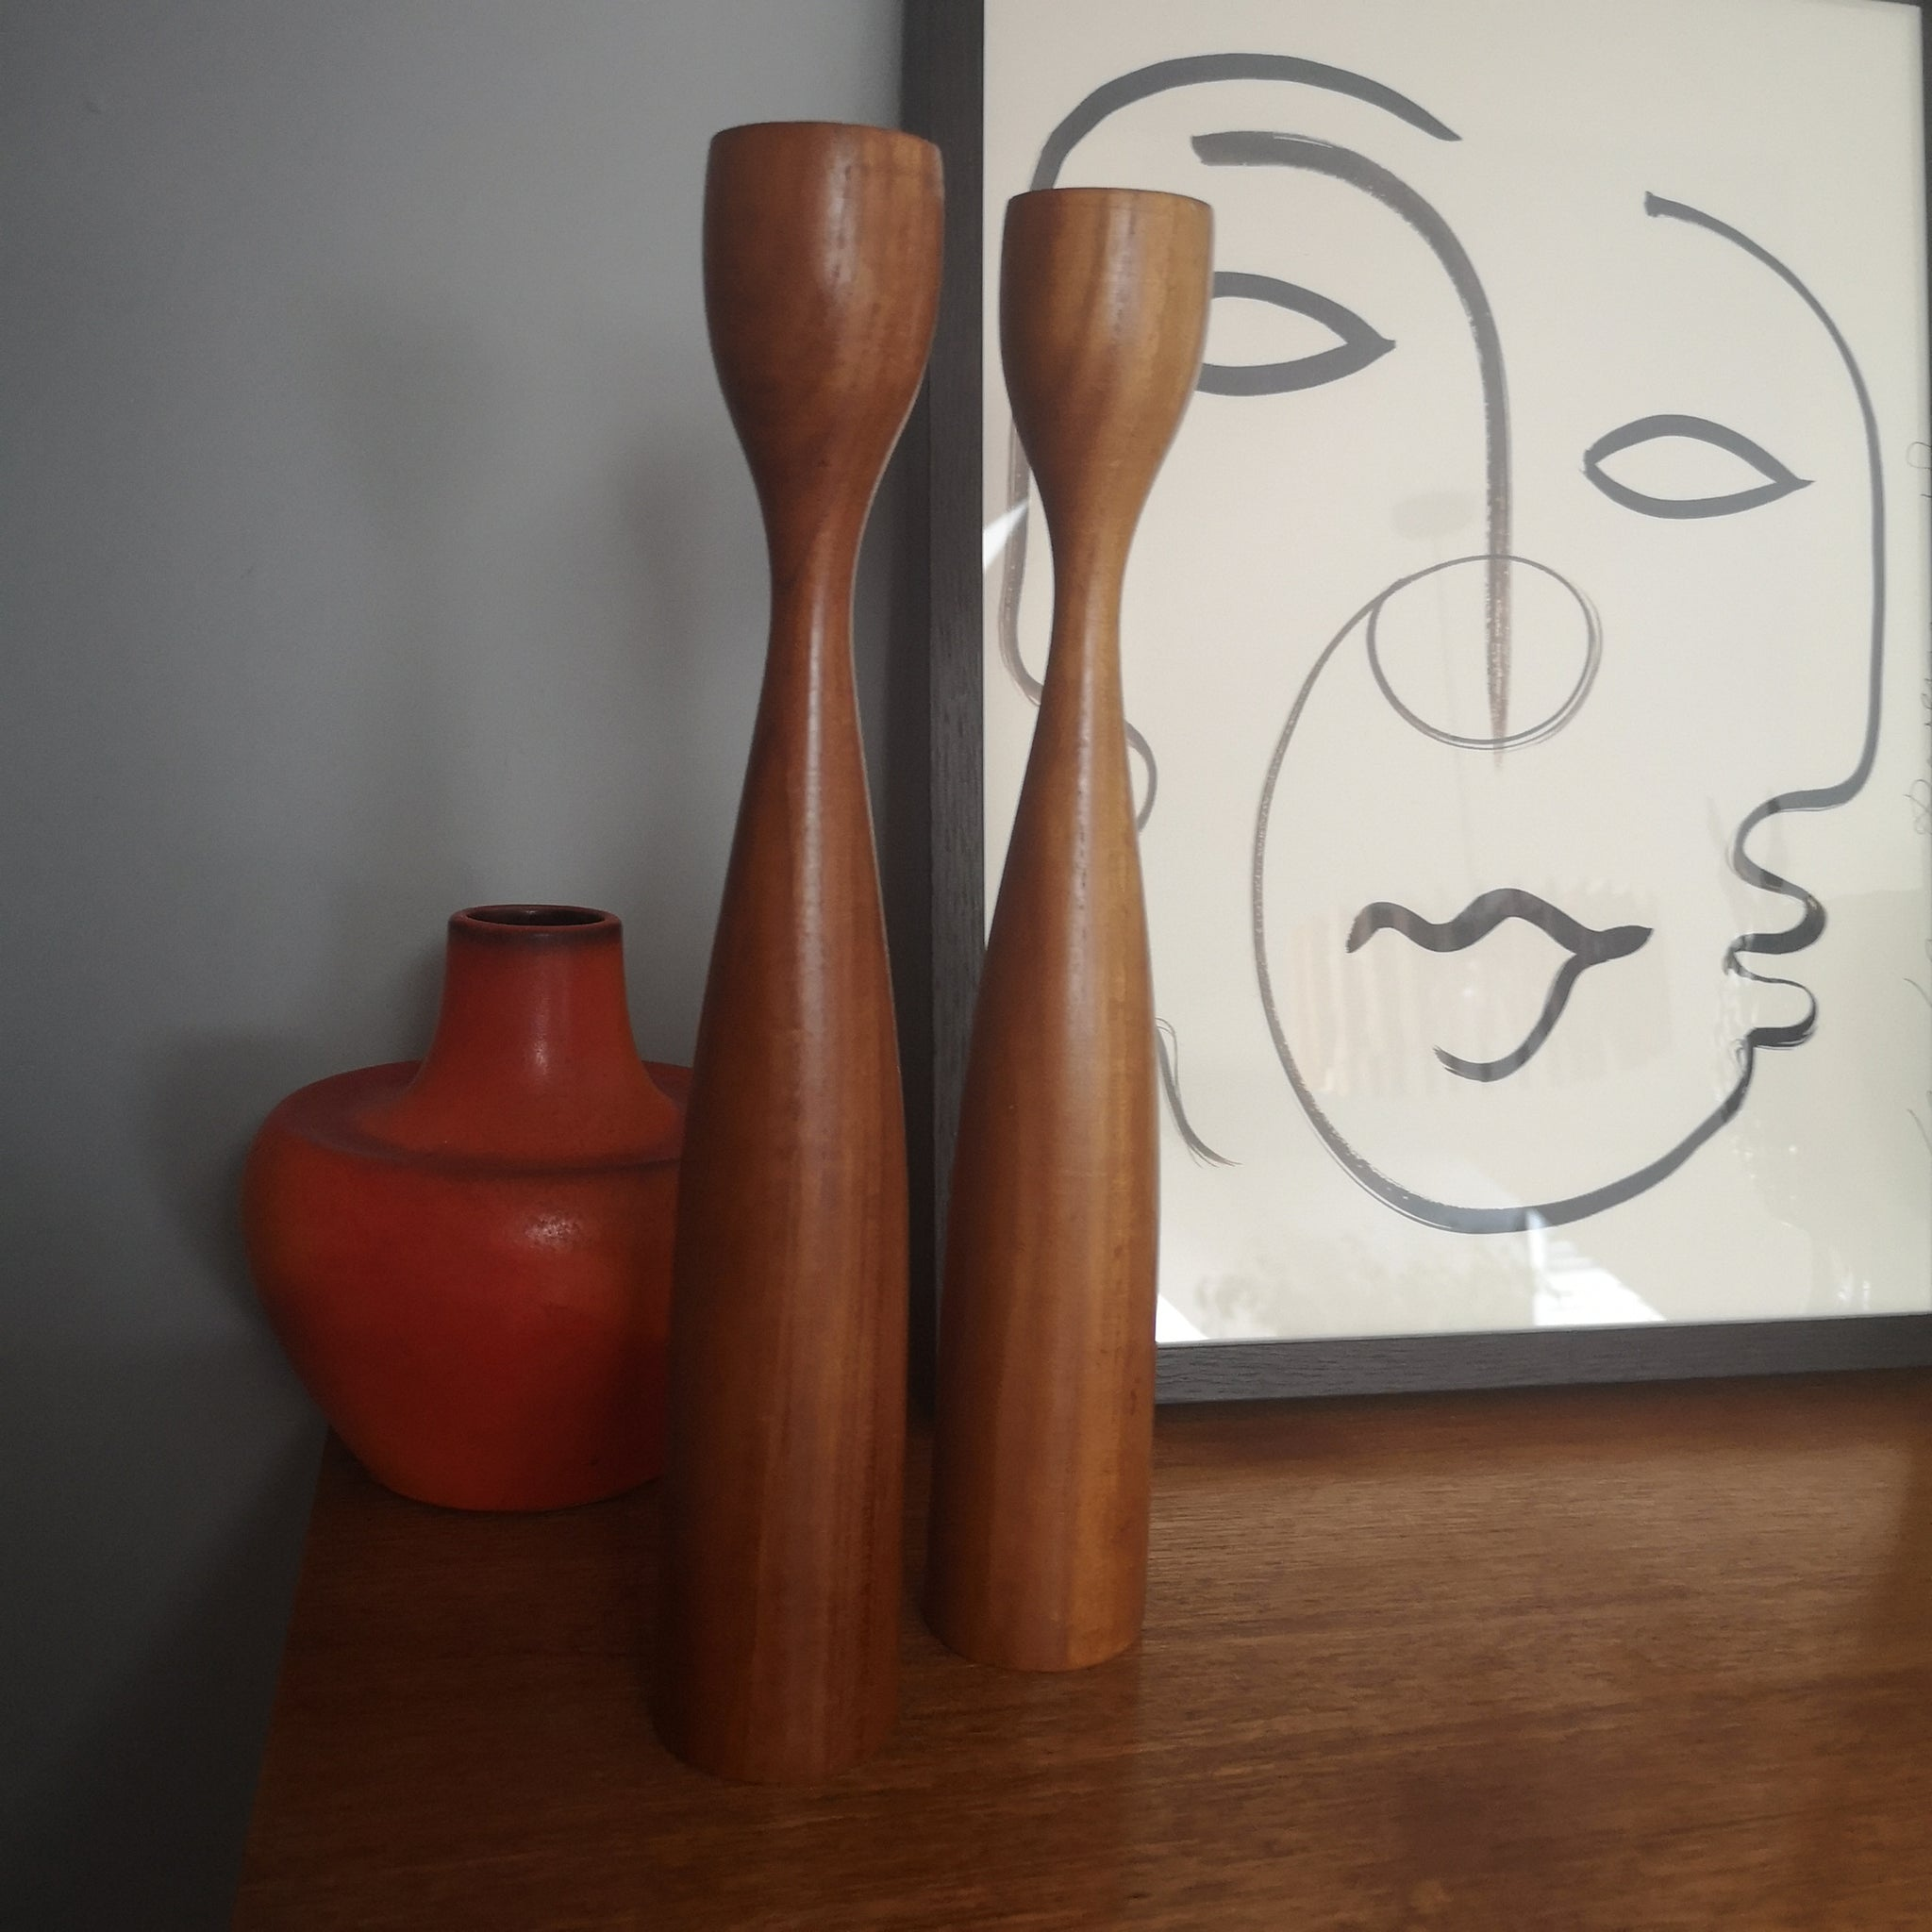 Danish Teak Candkesticks